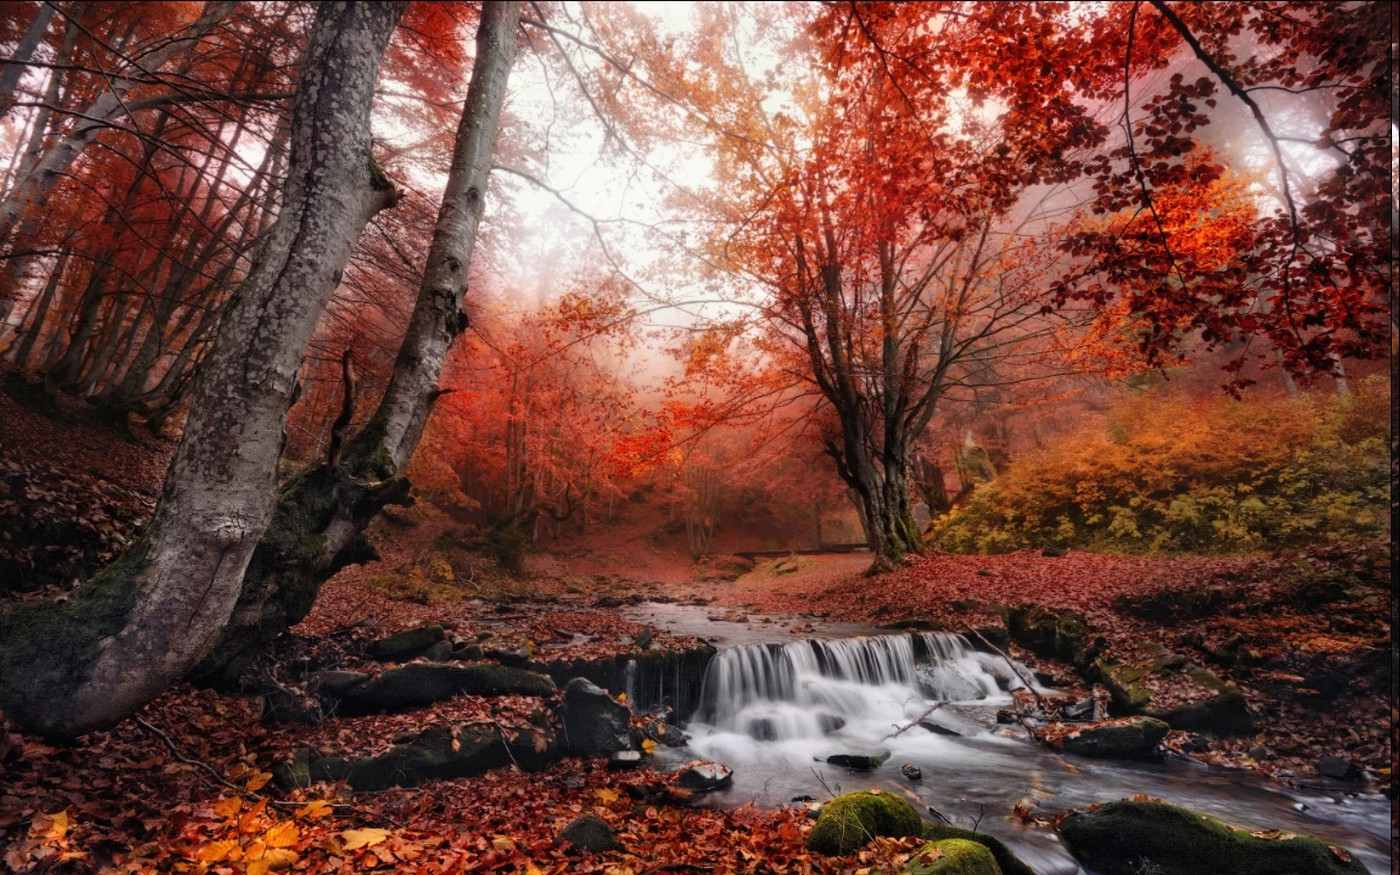 Fall Wallpaper For Computer Screen Nature Landscape Fall Mist Forest Leaves Creeks Red